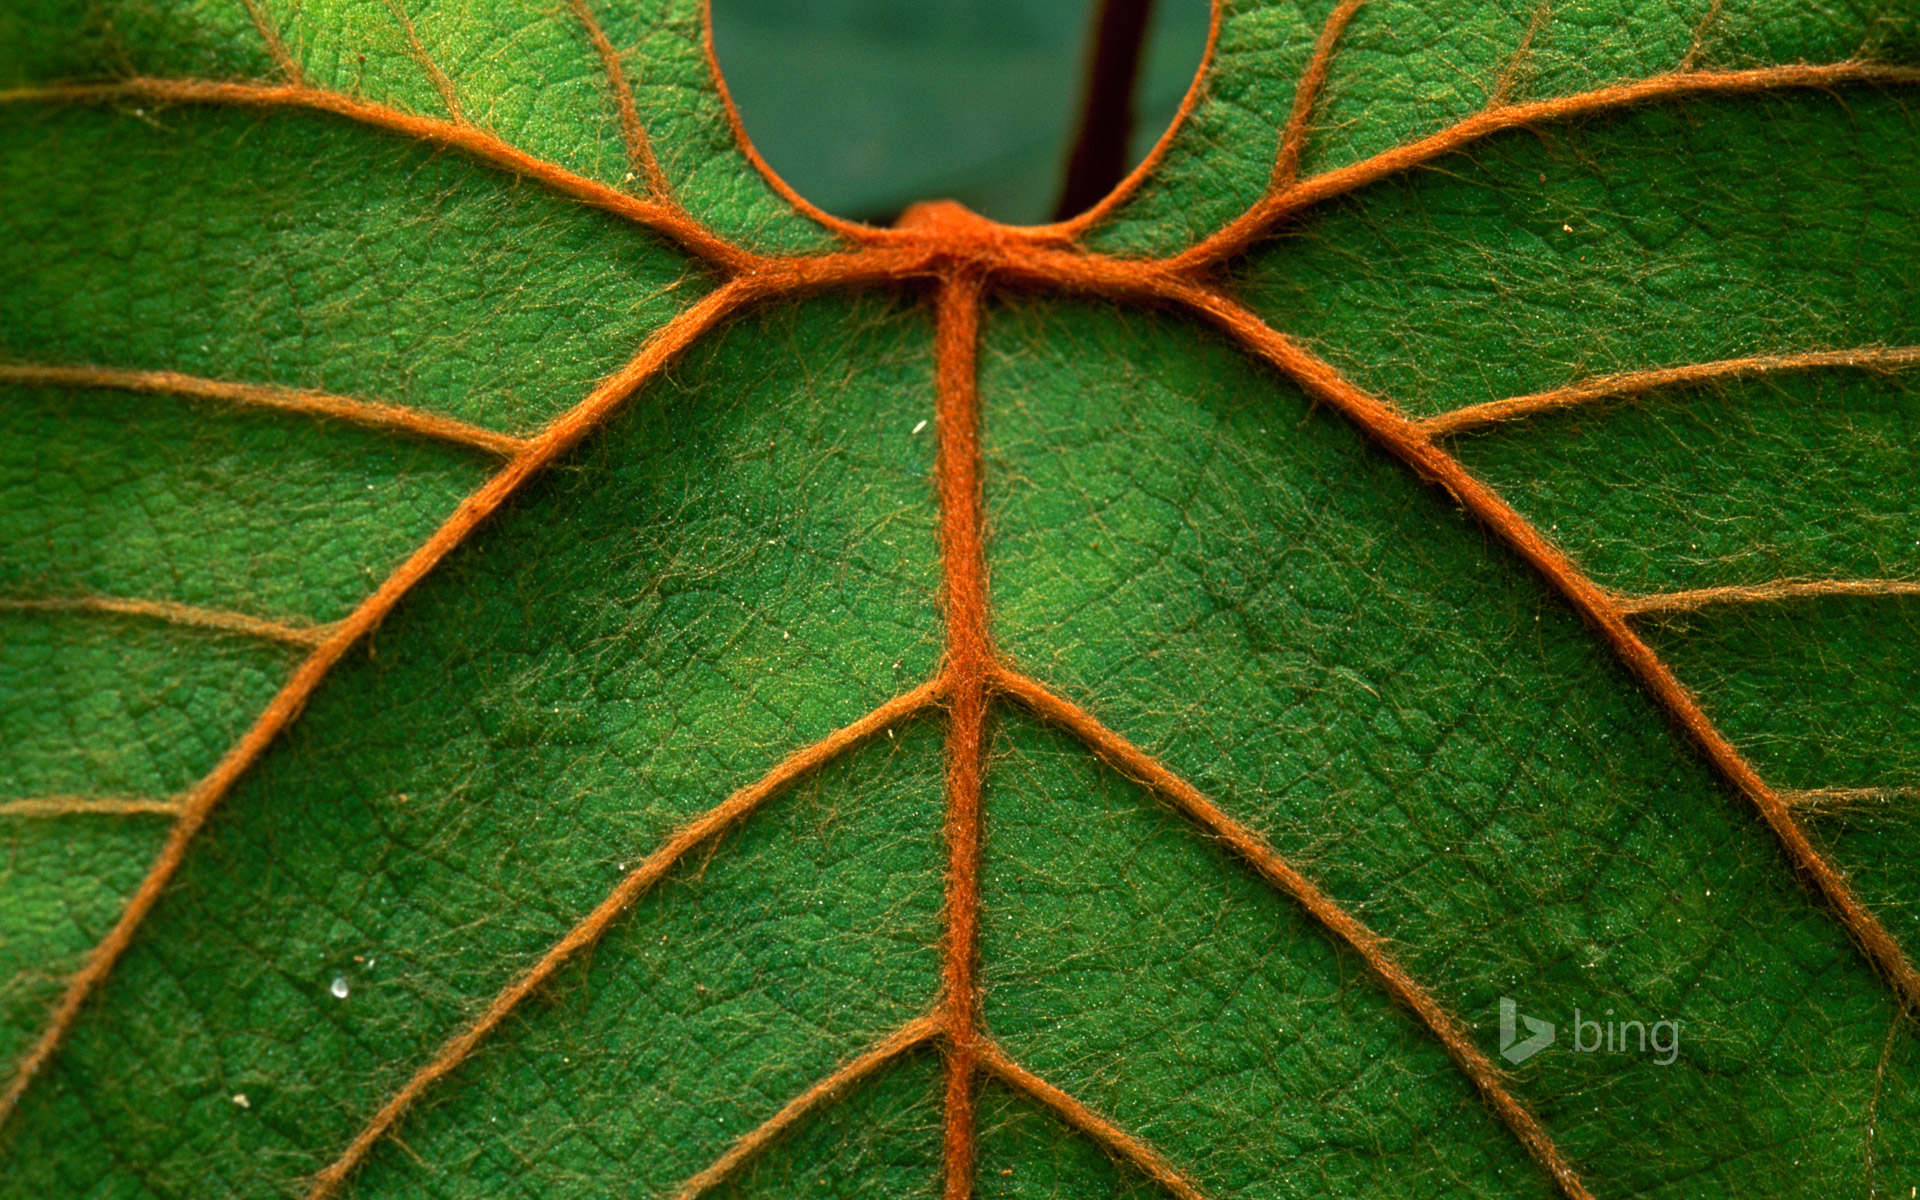 Detail of a leaf in Niah National Park in Sarawak, Borneo, Malaysia